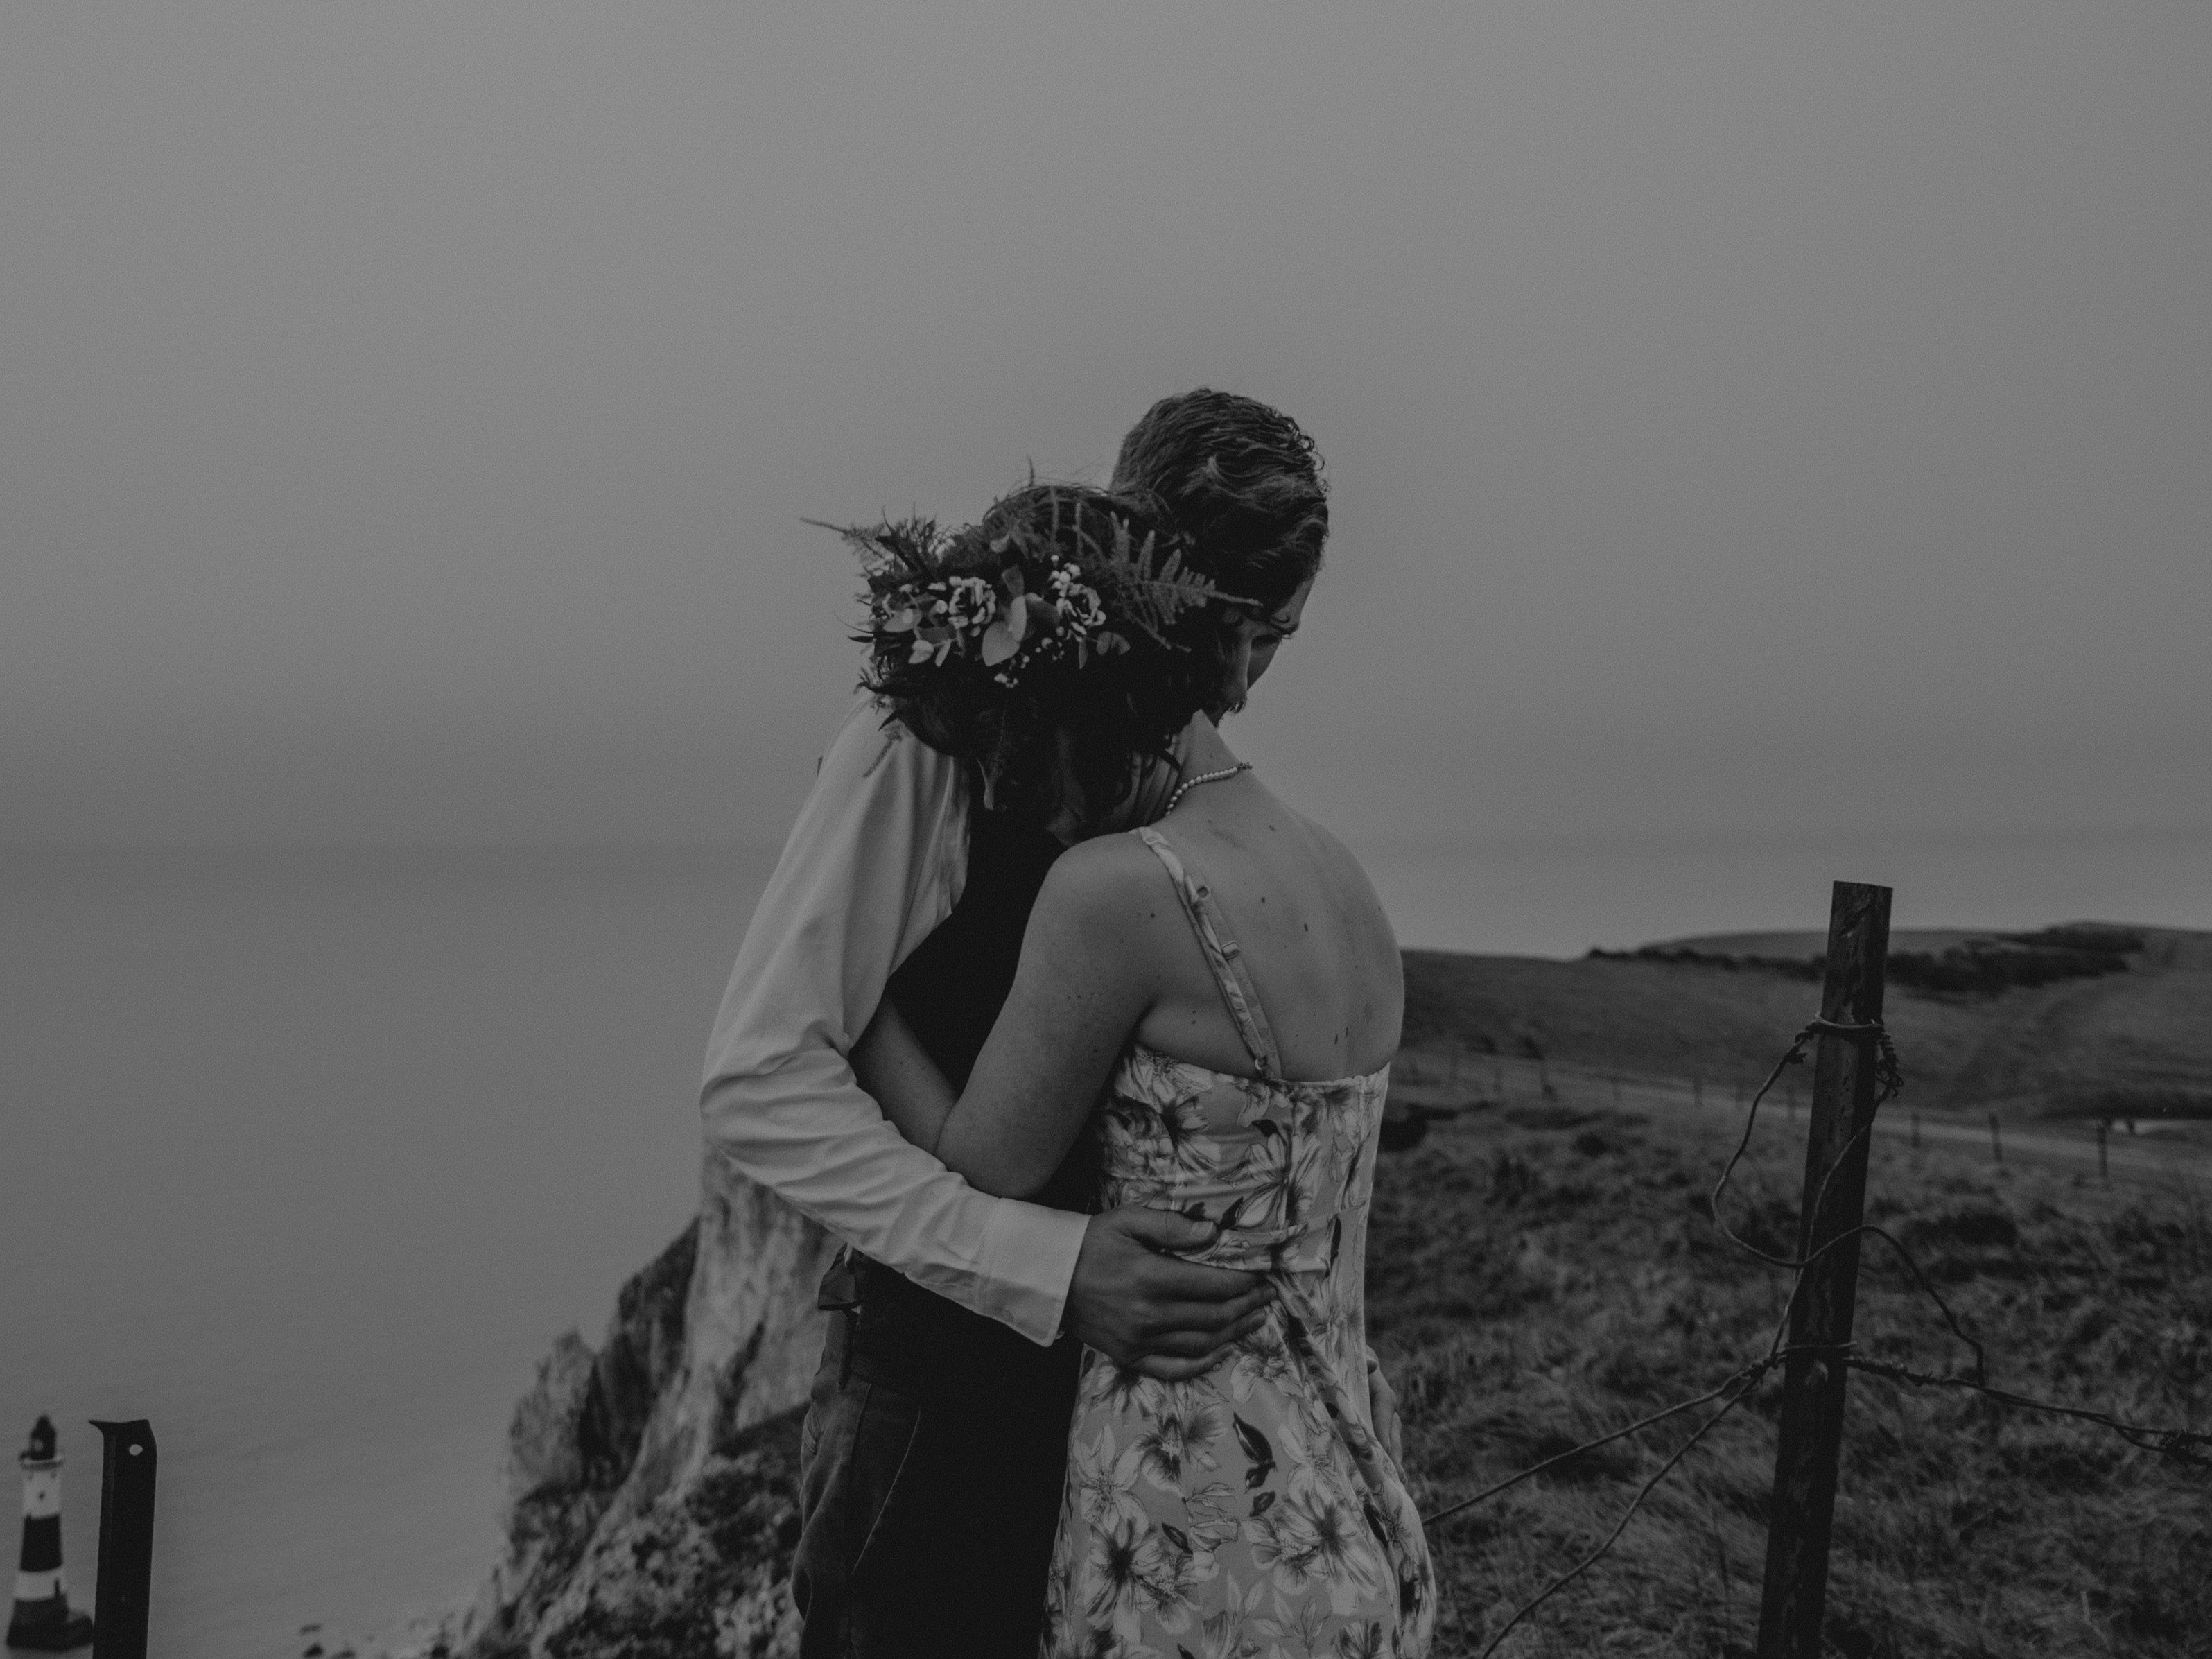 Man and woman embracing each other. | Photo: Pexels